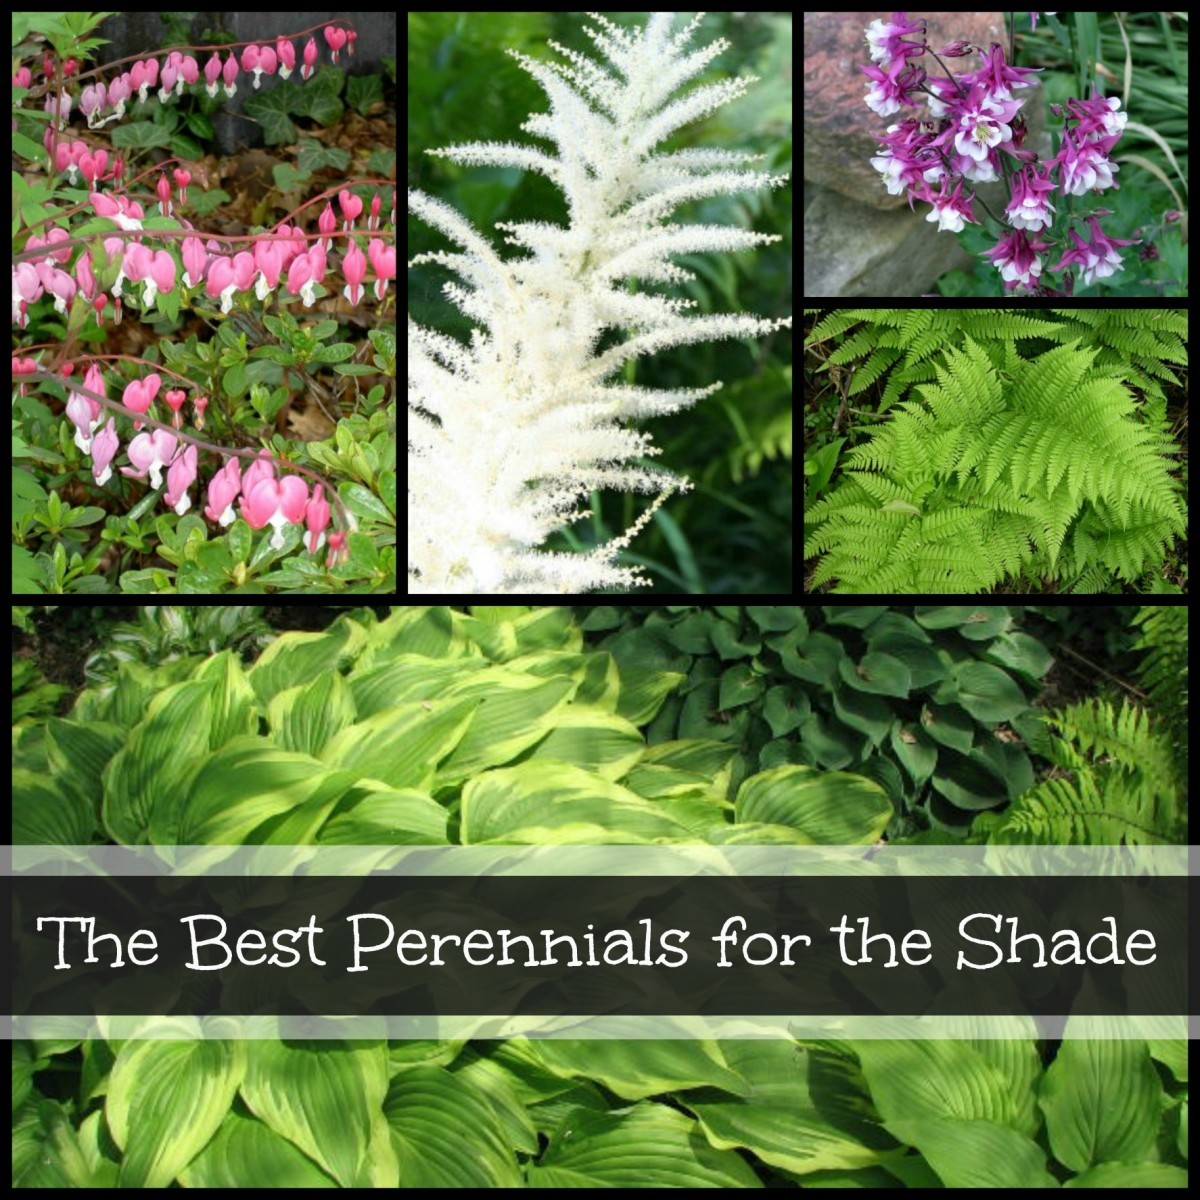 The Best Perennials for the Shade